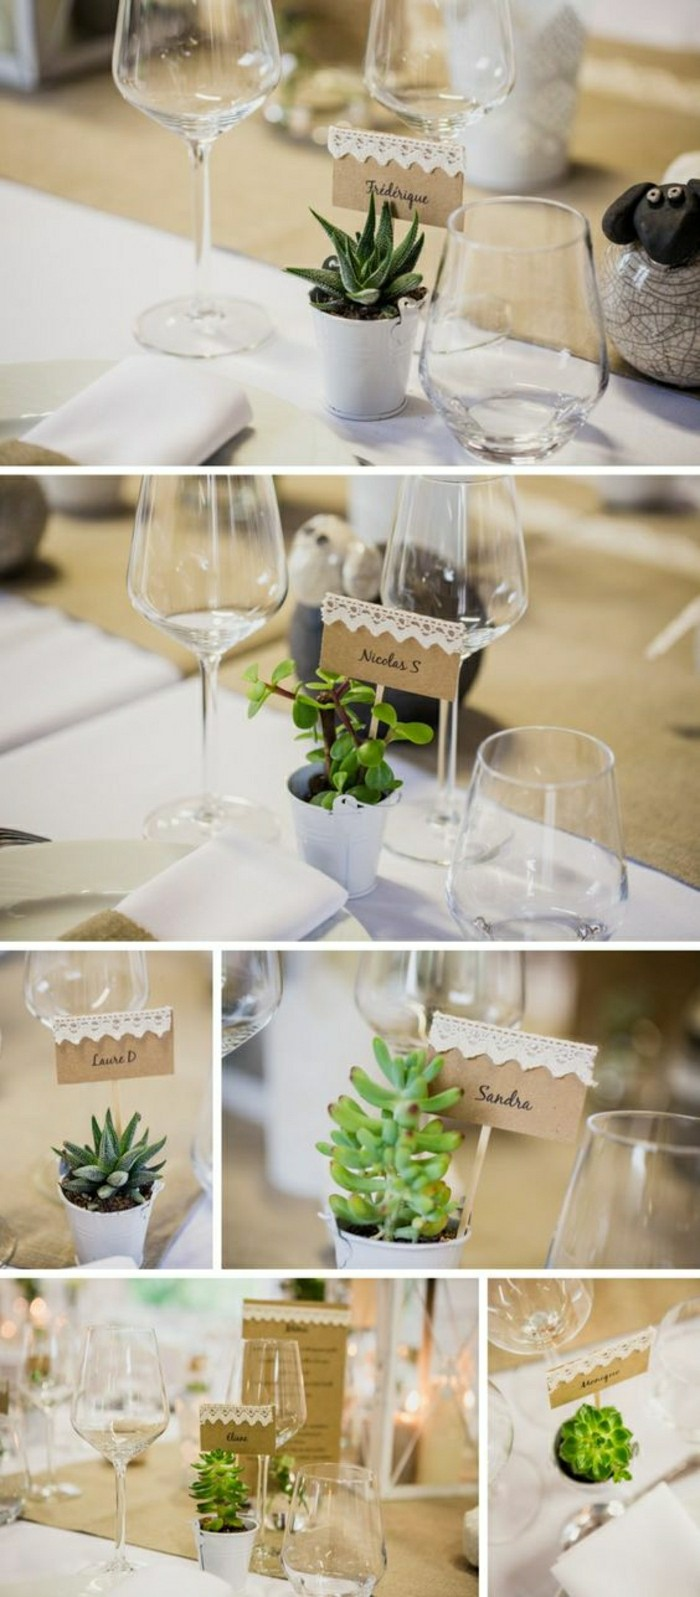 Diy id e selon votre th me de mariage en 45 photos - Photo de table ...